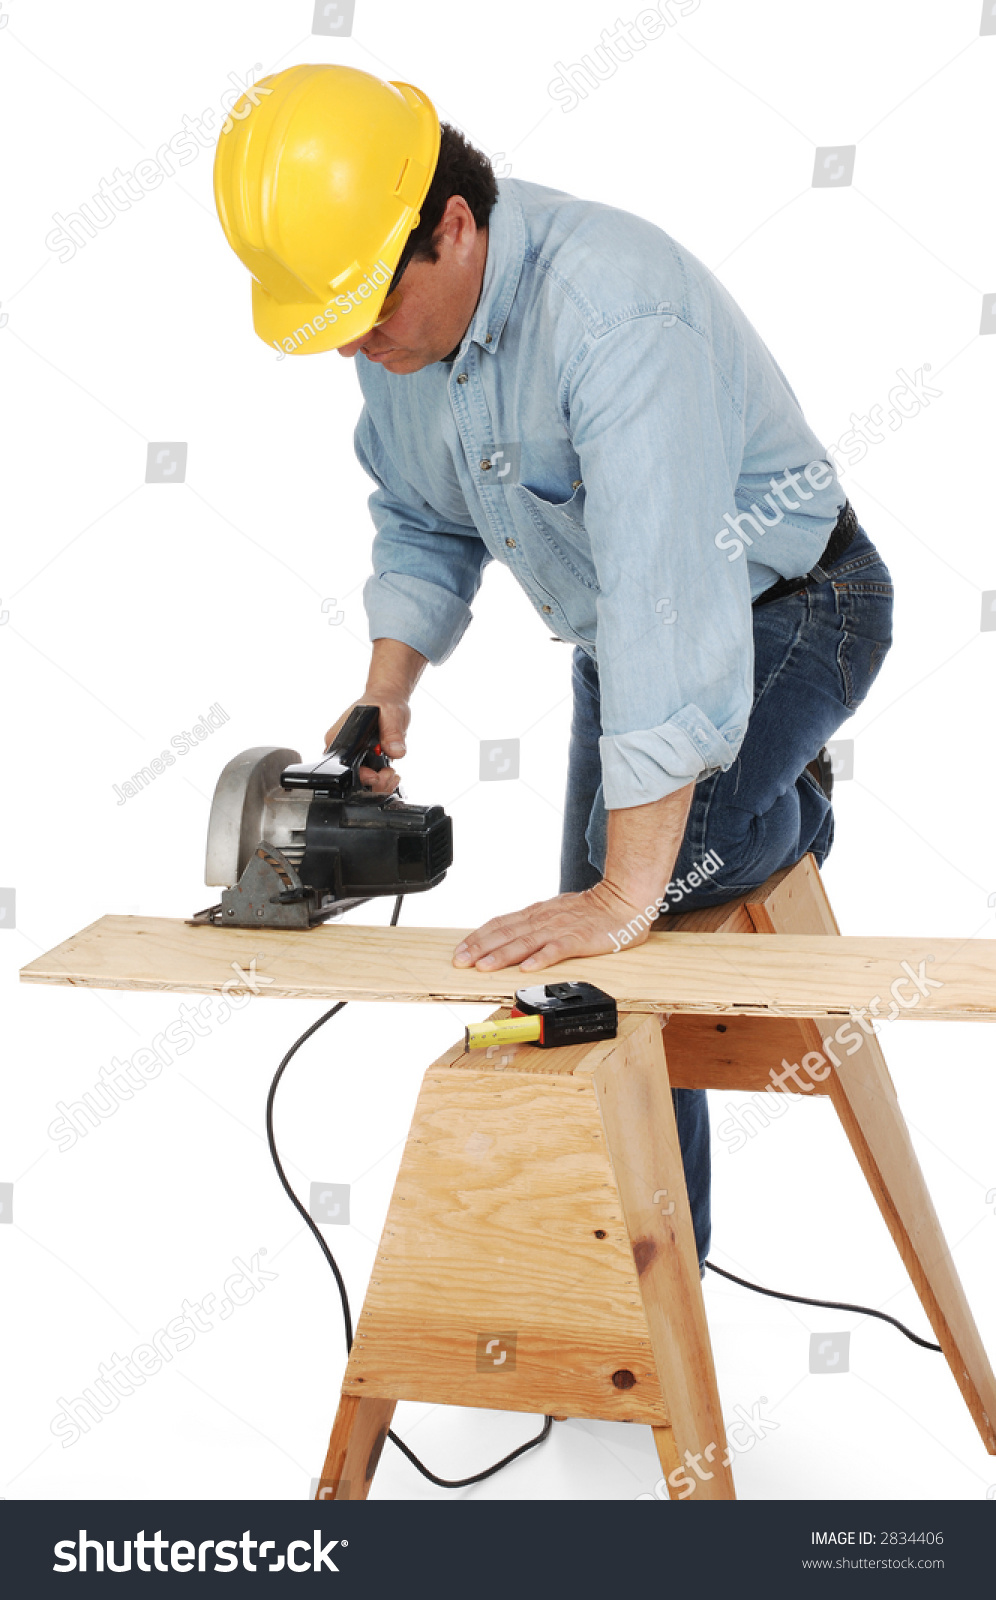 100 Tradesman Bench Table Saw Carpenter Wearing Hard Hat Cutting Plank Stock Photo